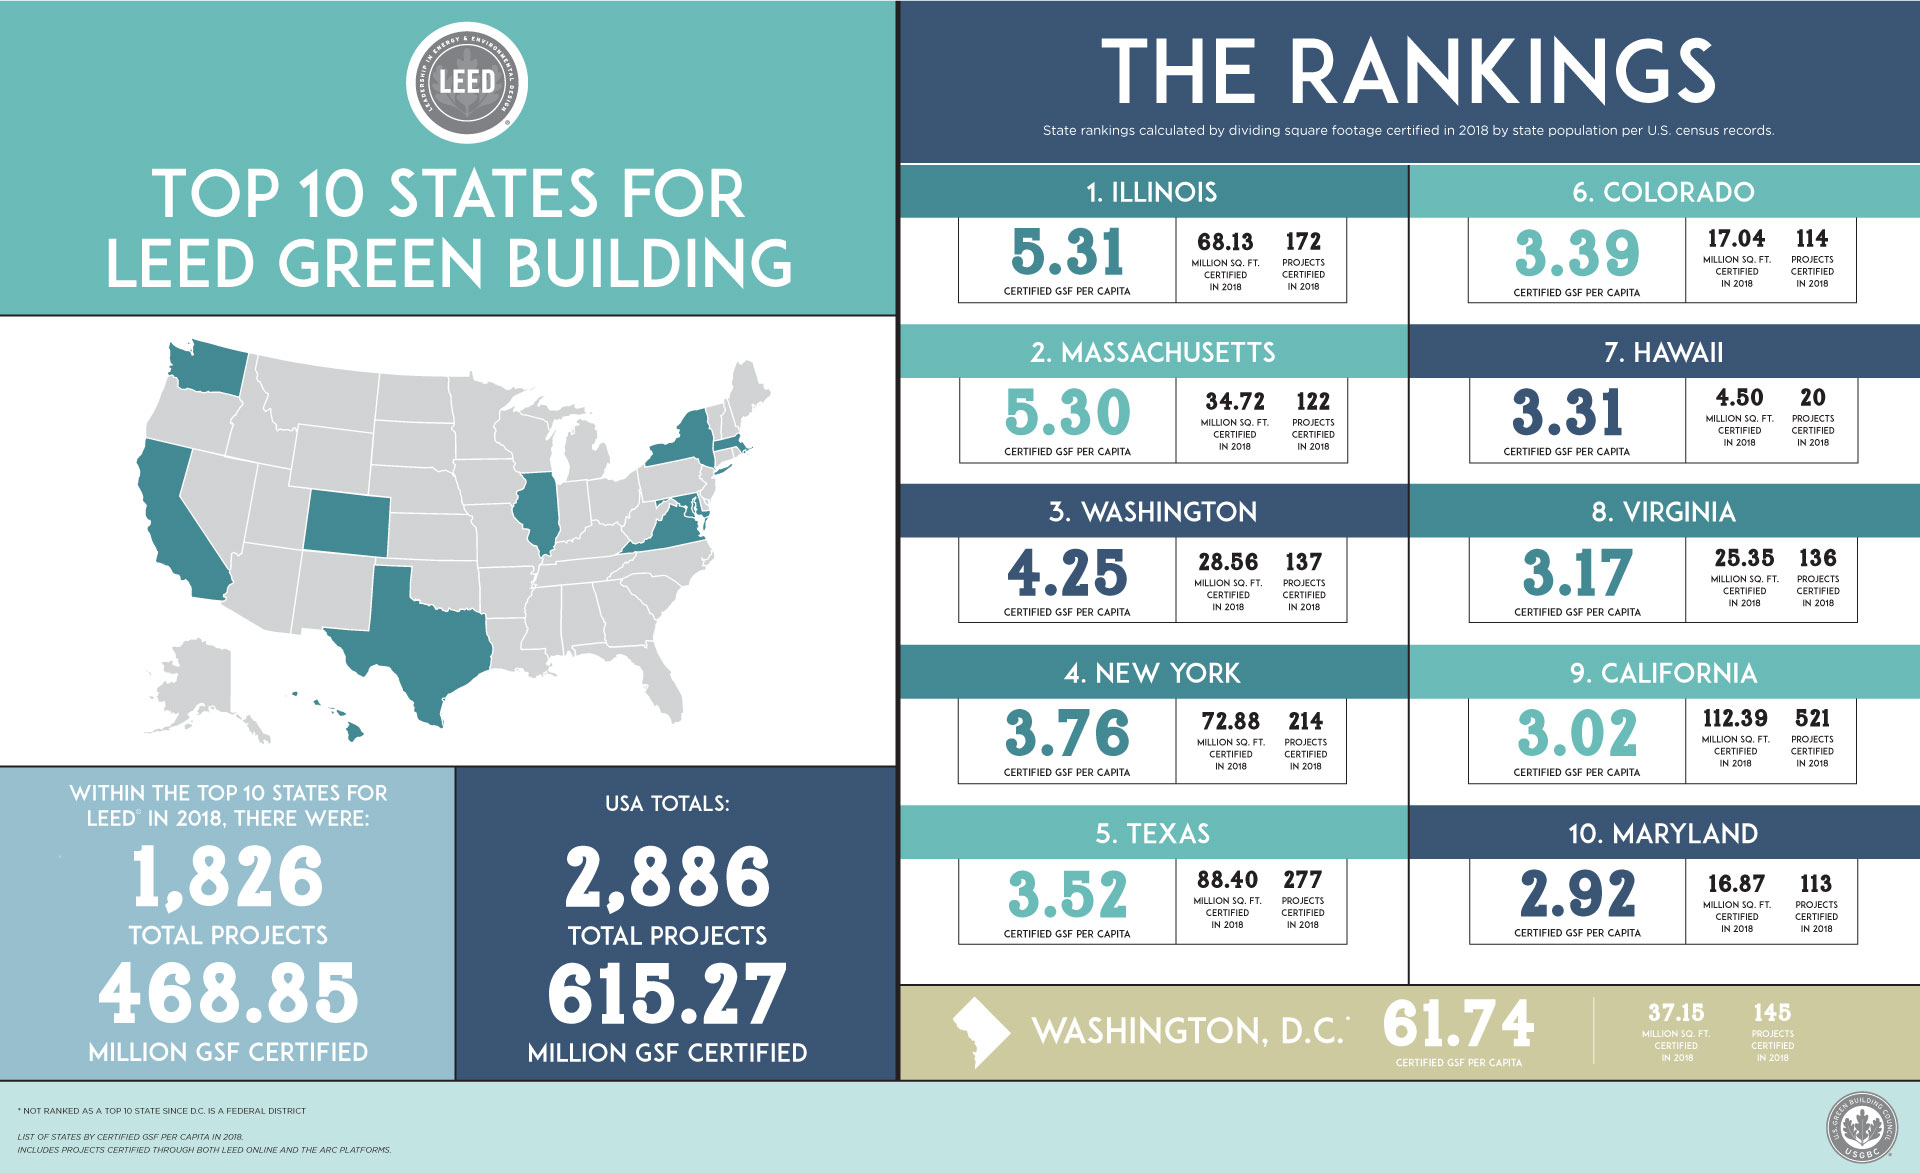 Top 10 states for LEED in 2018